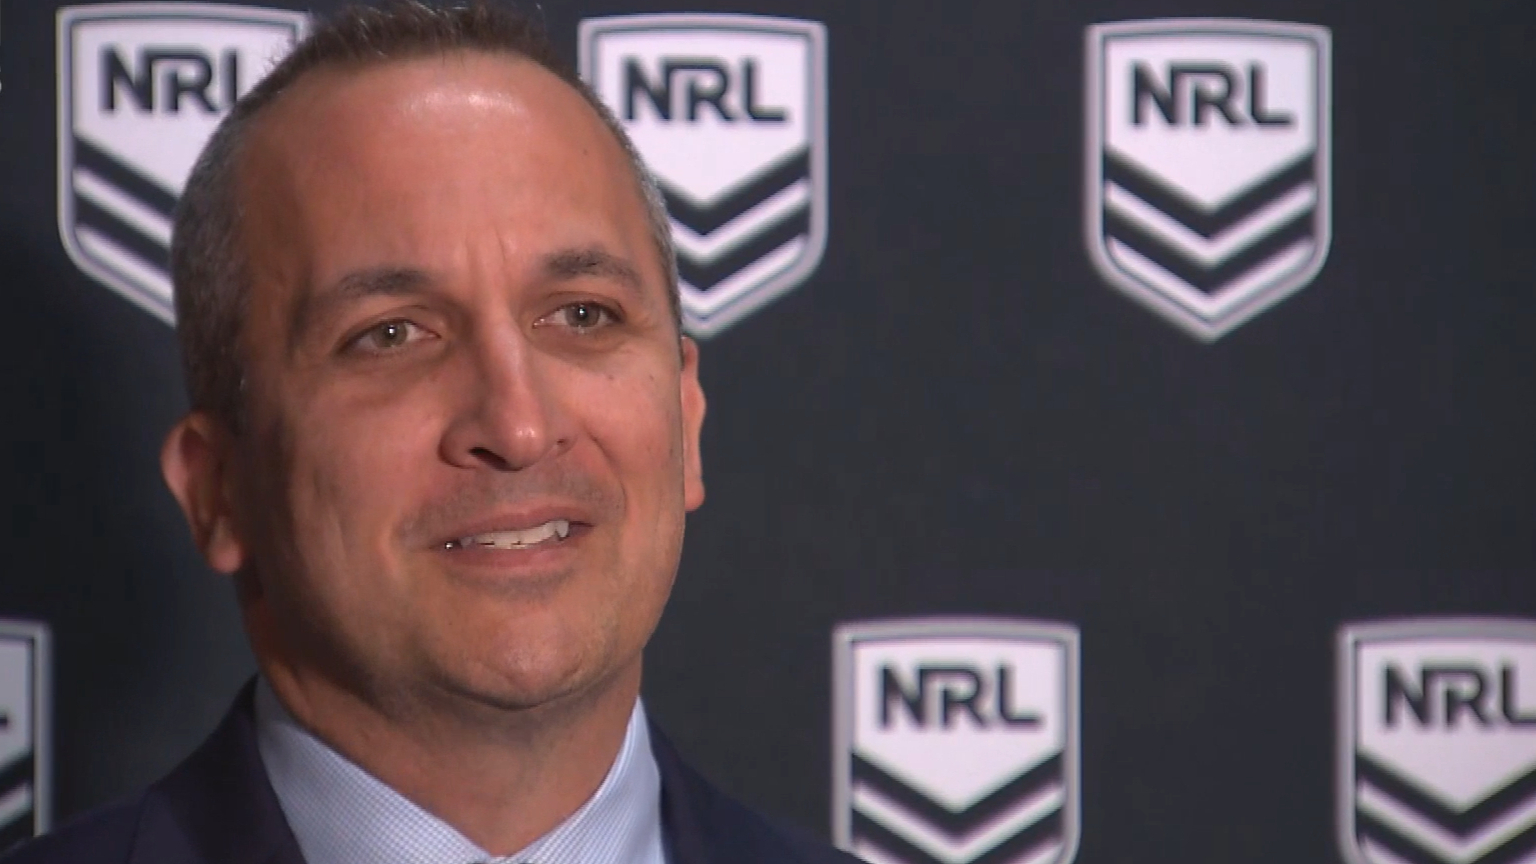 NRL unveils radical rule change for 2021 season